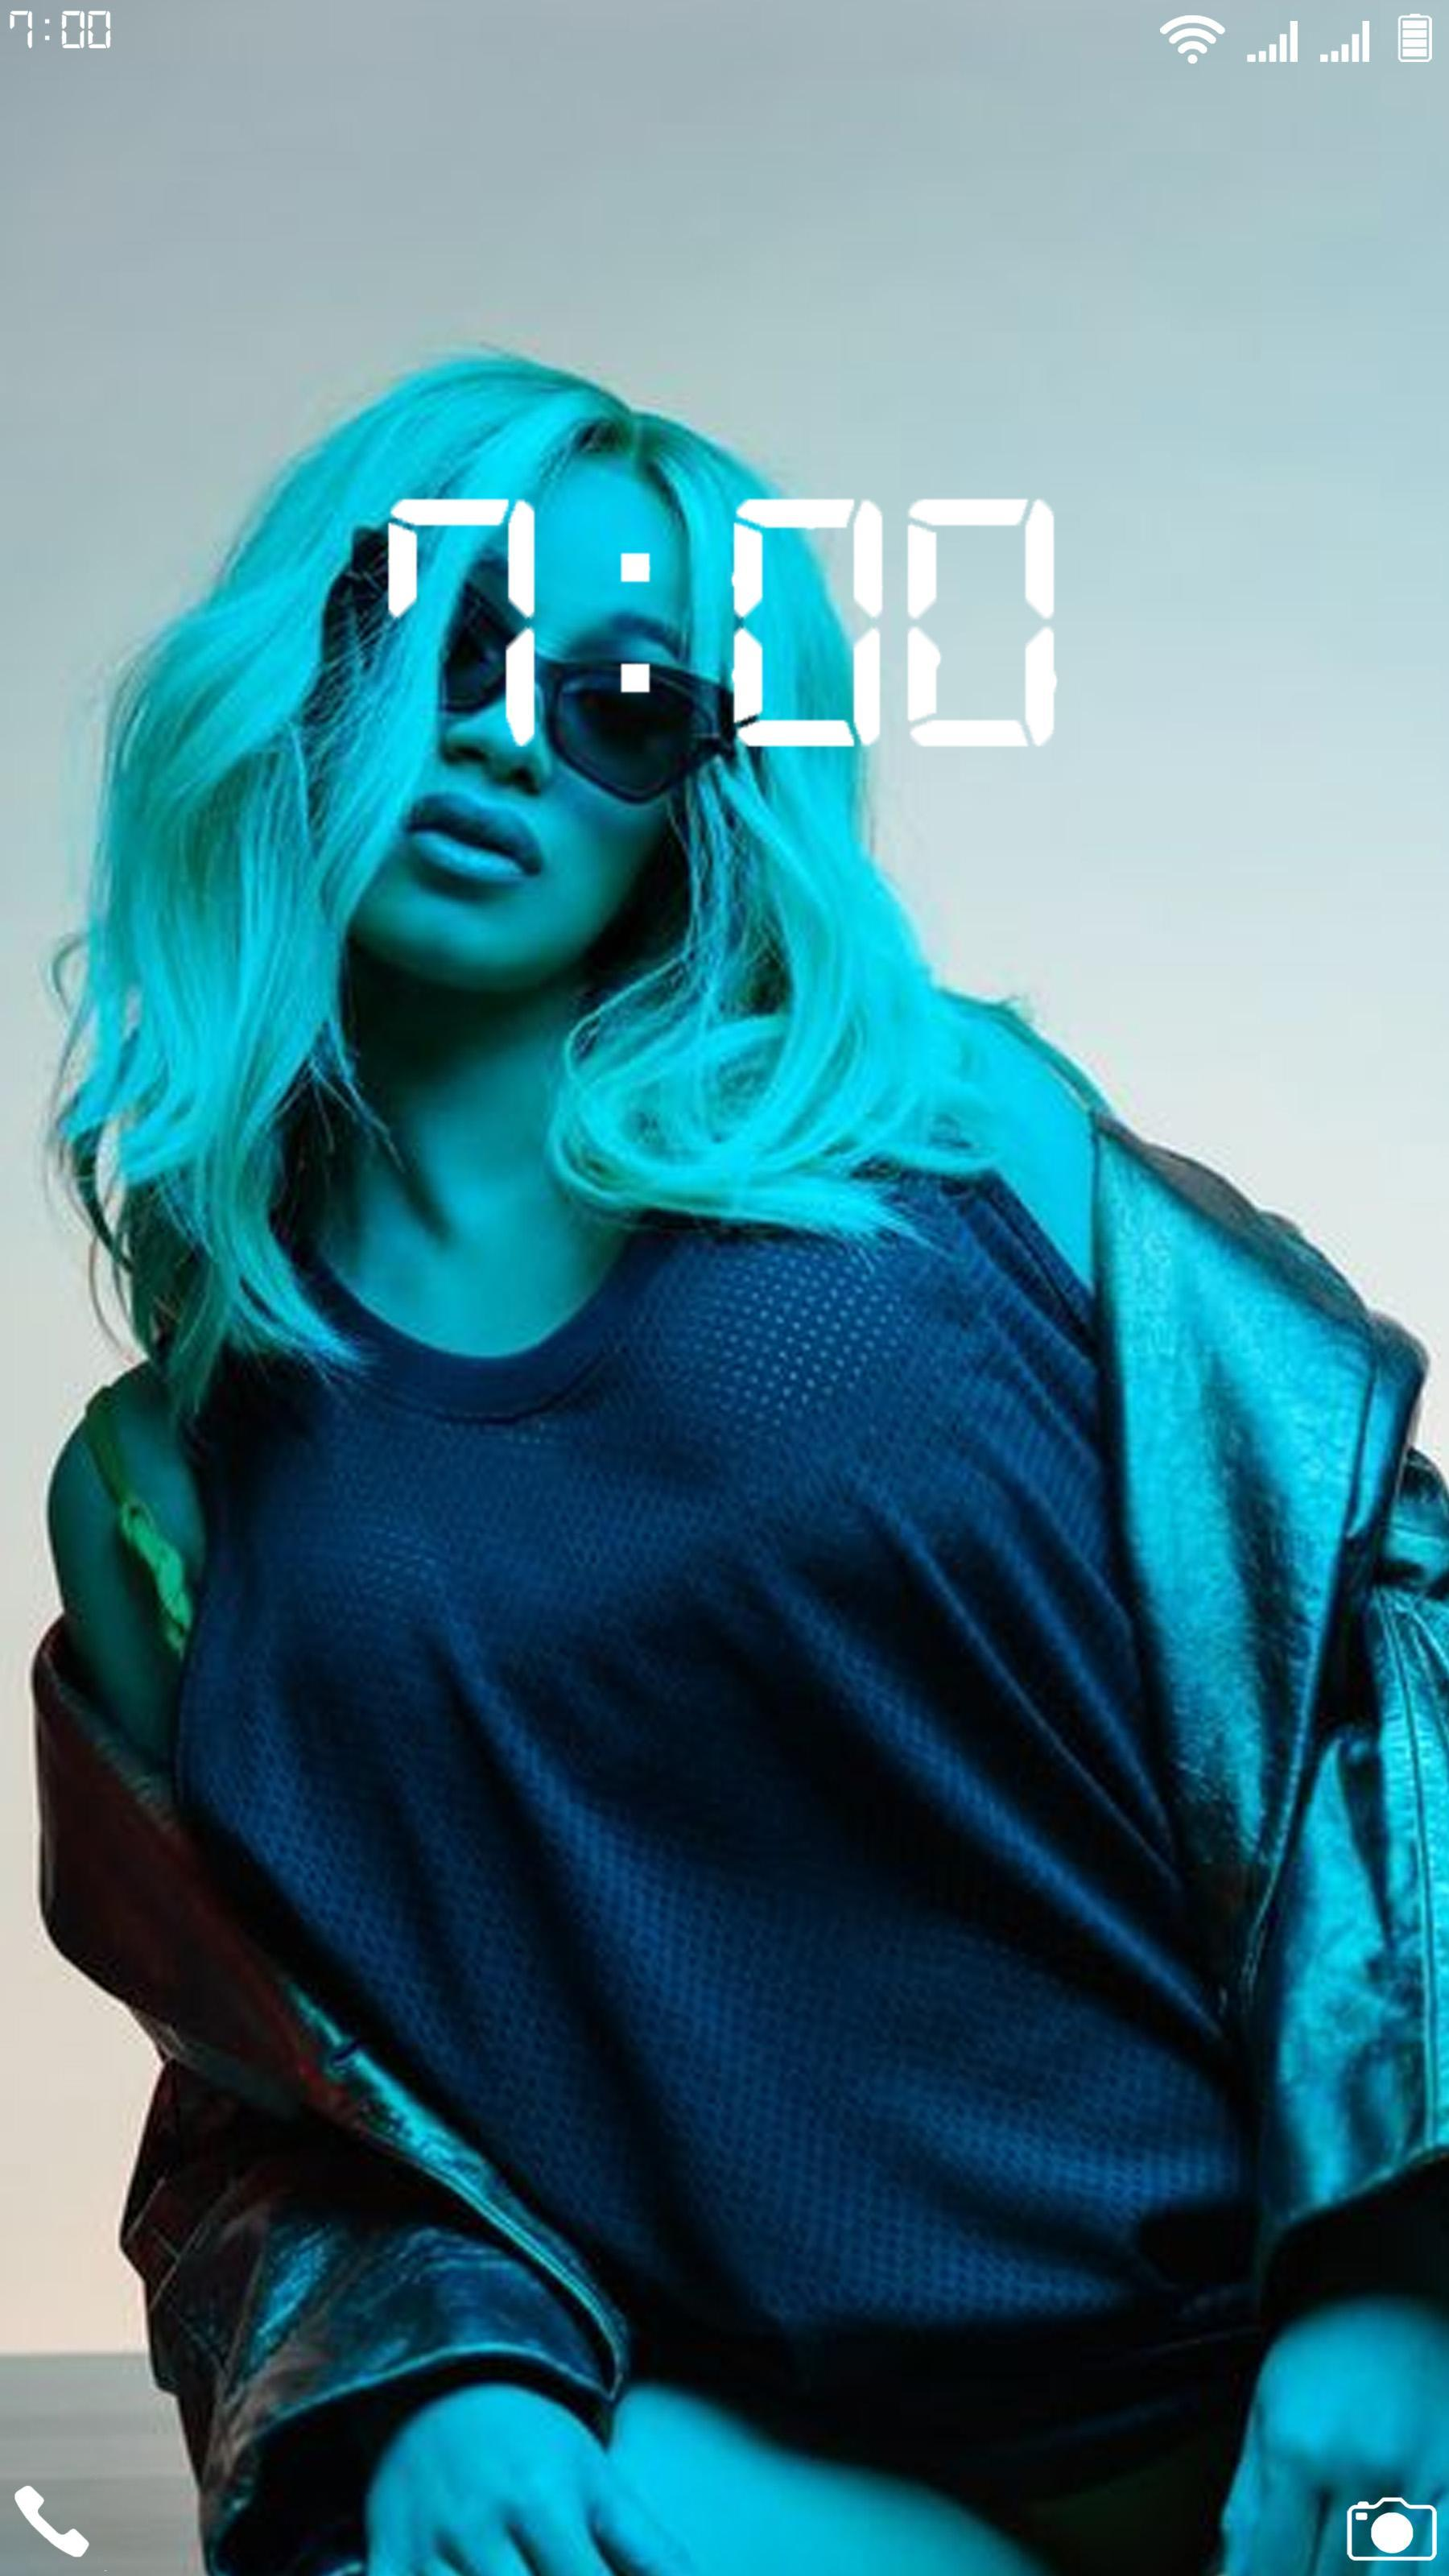 Cardi B Wallpapers HD for Android - APK ...